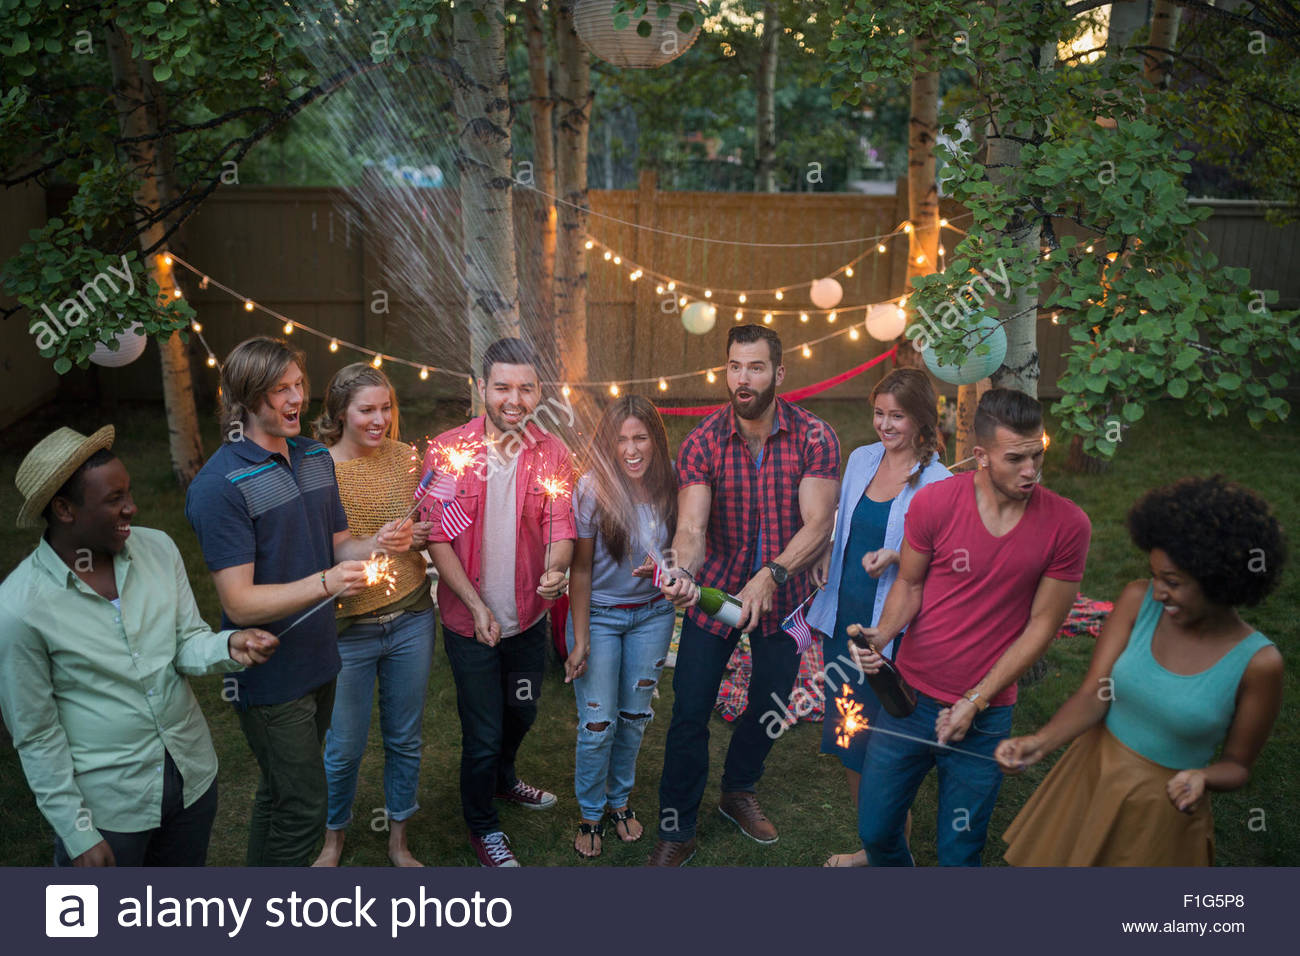 friends with sparklers at backyard party stock photo royalty free